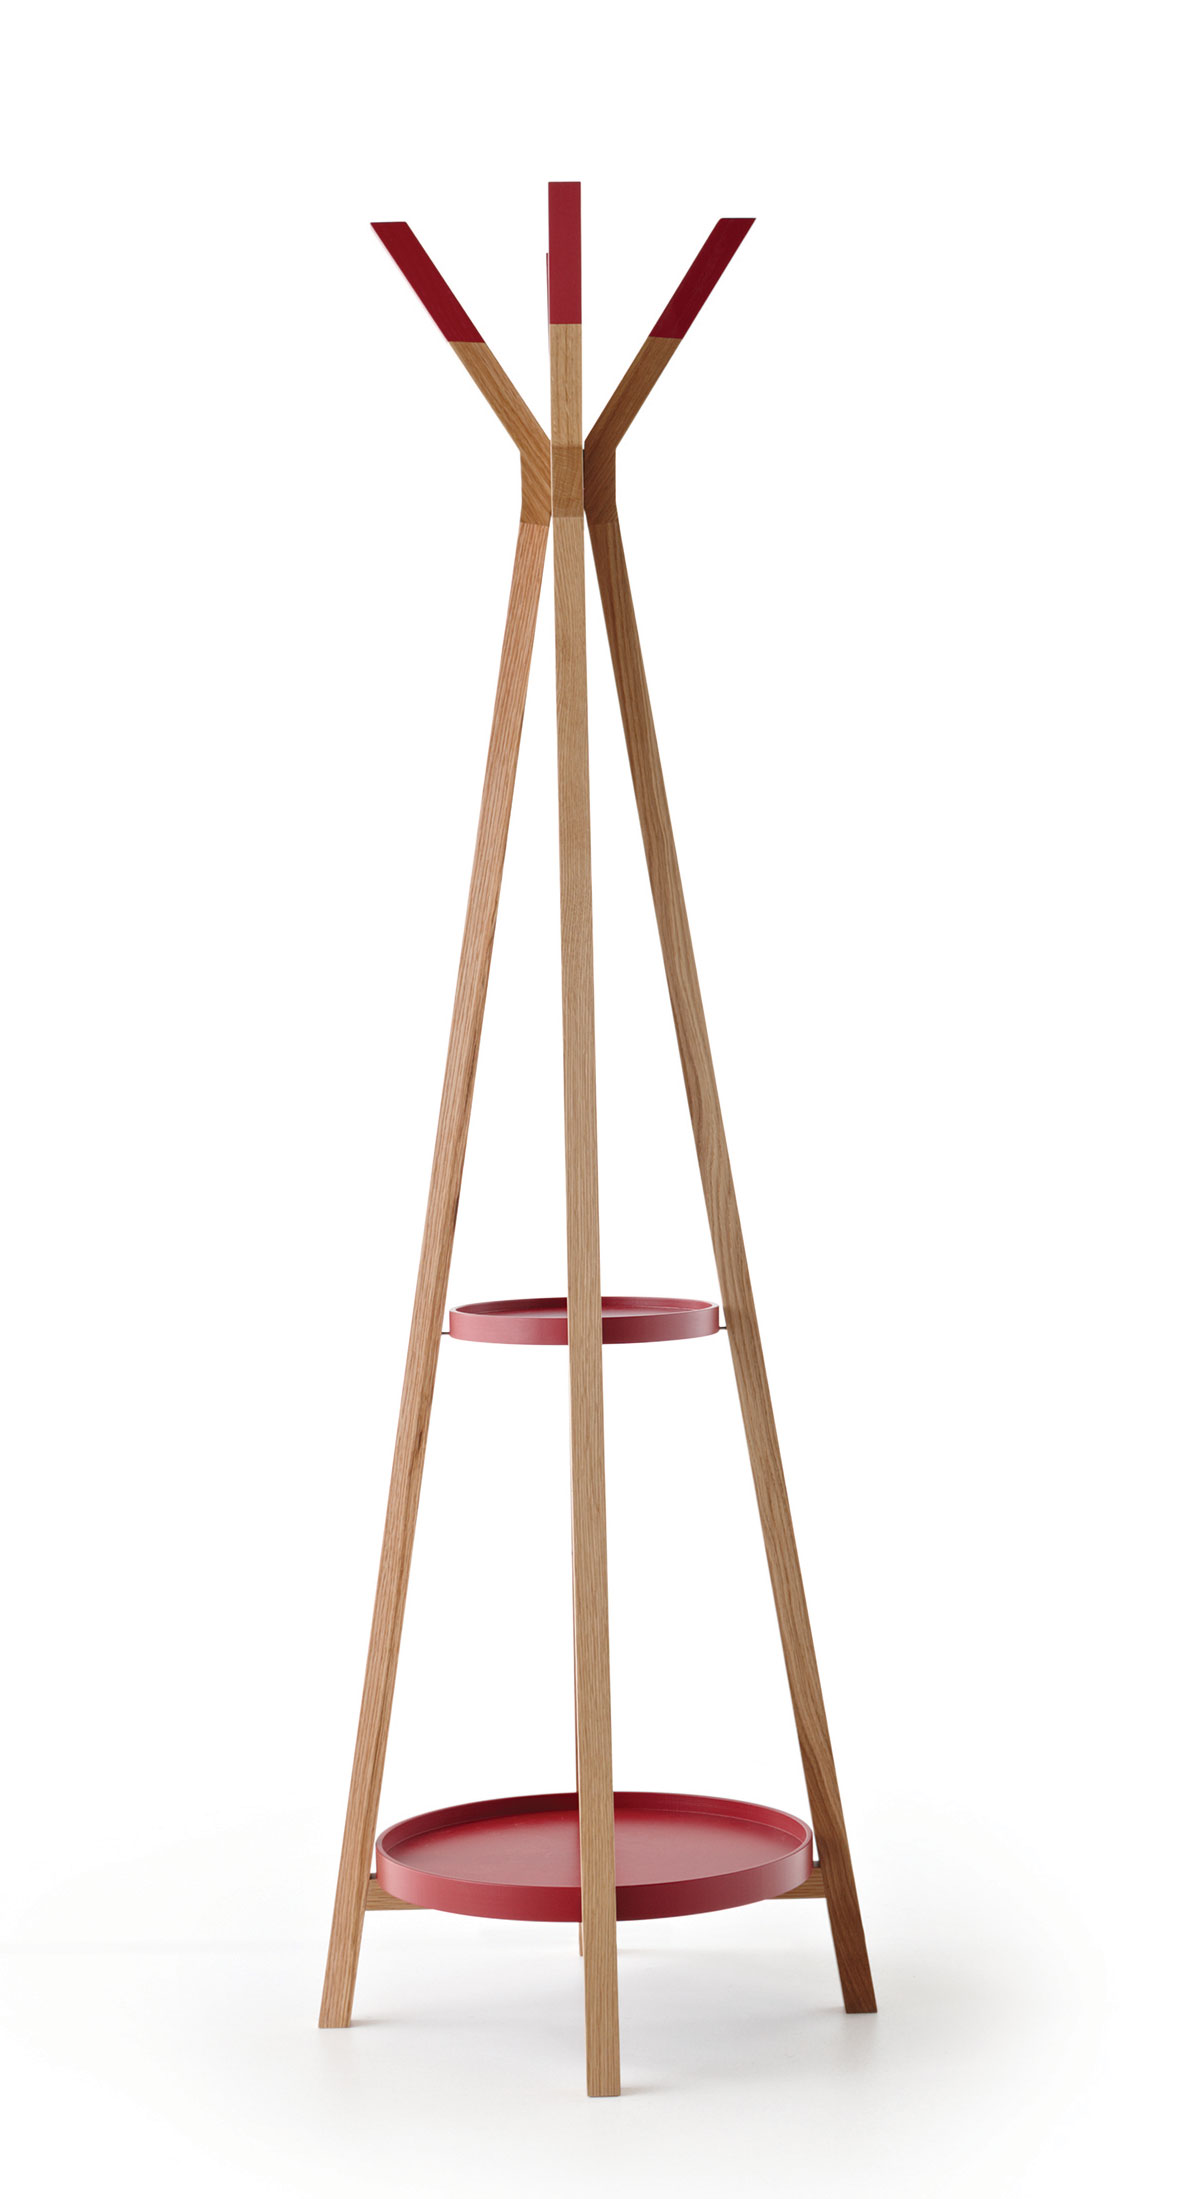 TP Coatstand by Schiavello | Yellowtrace.